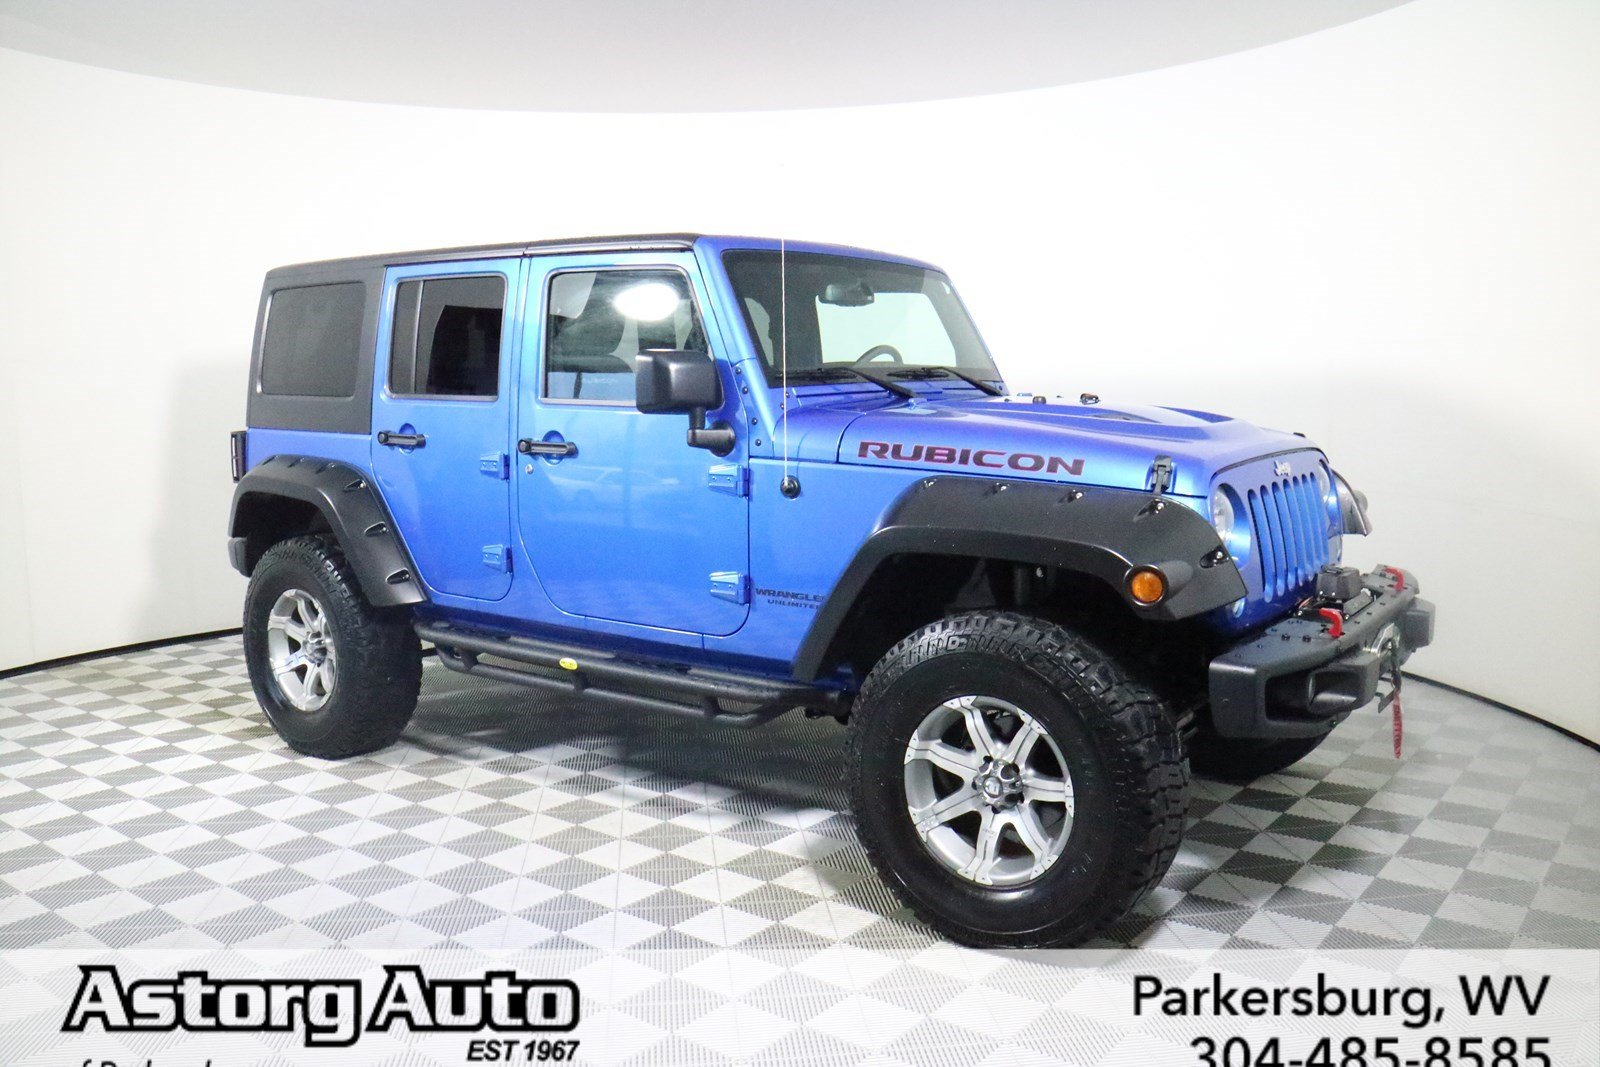 Photo PRE-OWNED 2015 JEEP WRANGLER UNLIMITED RUBICON HARD ROCK 4WD